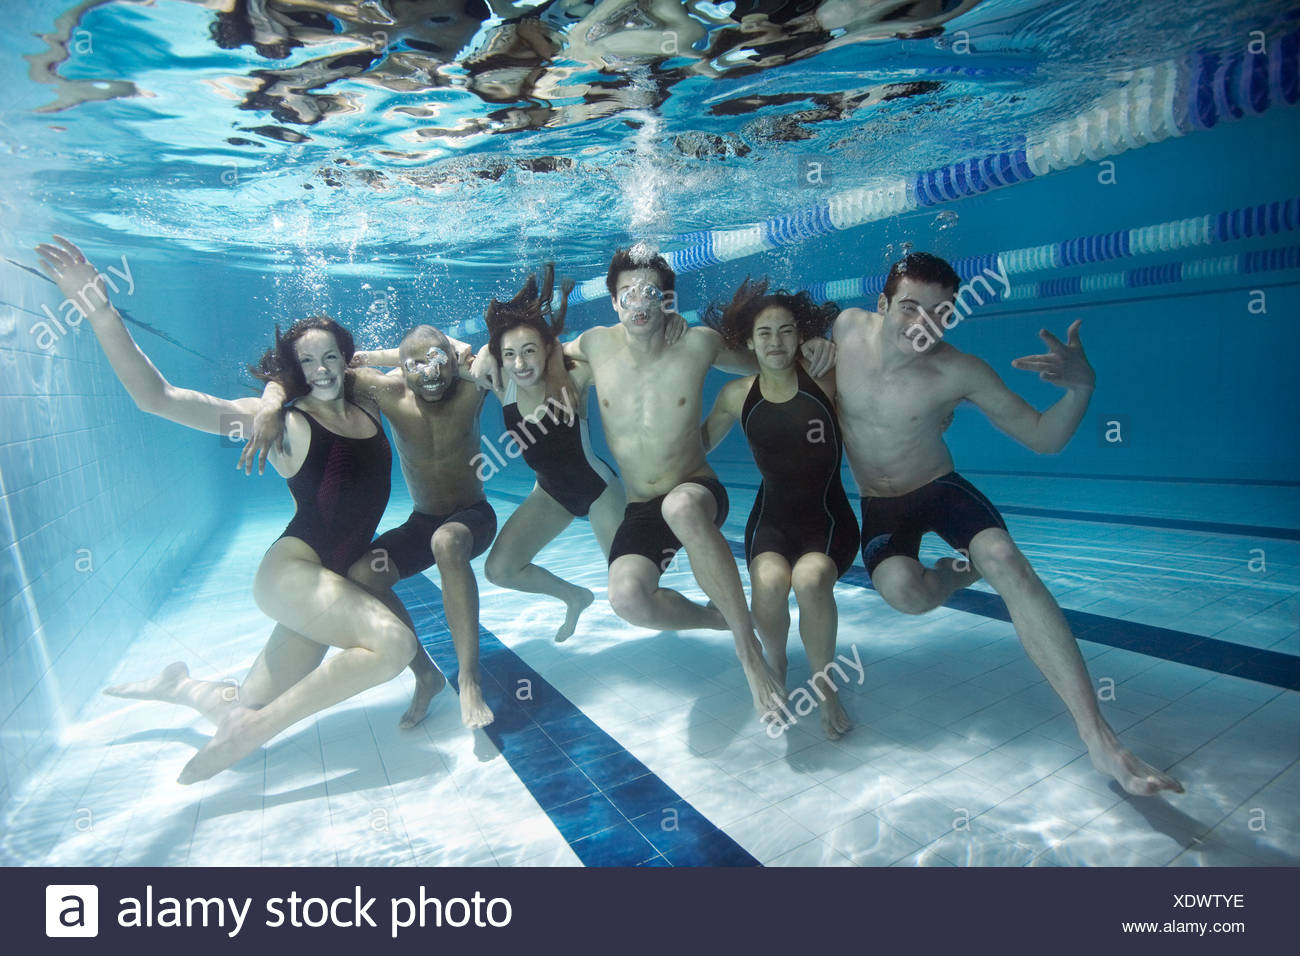 Swimmers posing underwater together - Stock Image